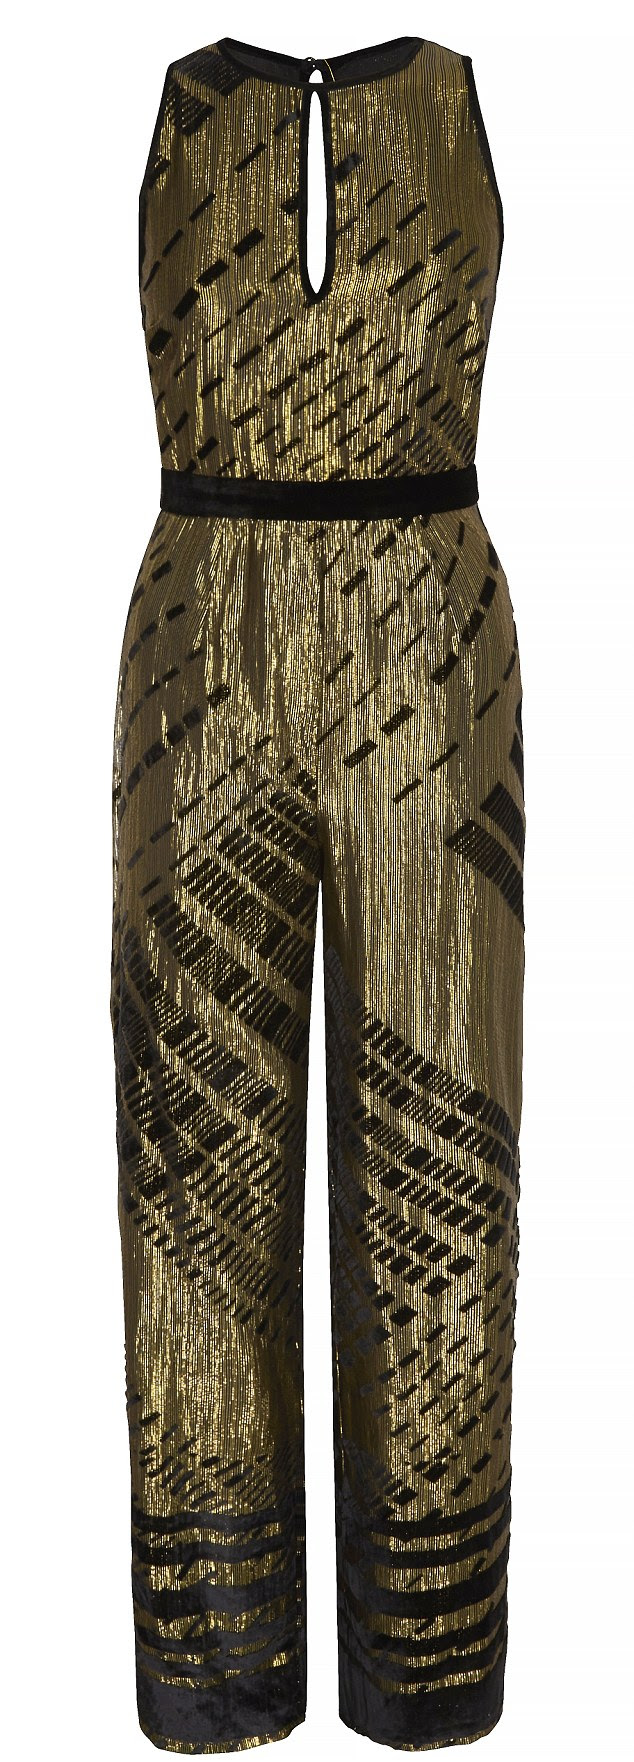 Jump on the jumpsuit trend with Next's fabulously festive black/gold devore jumpsuit, £80, from Next